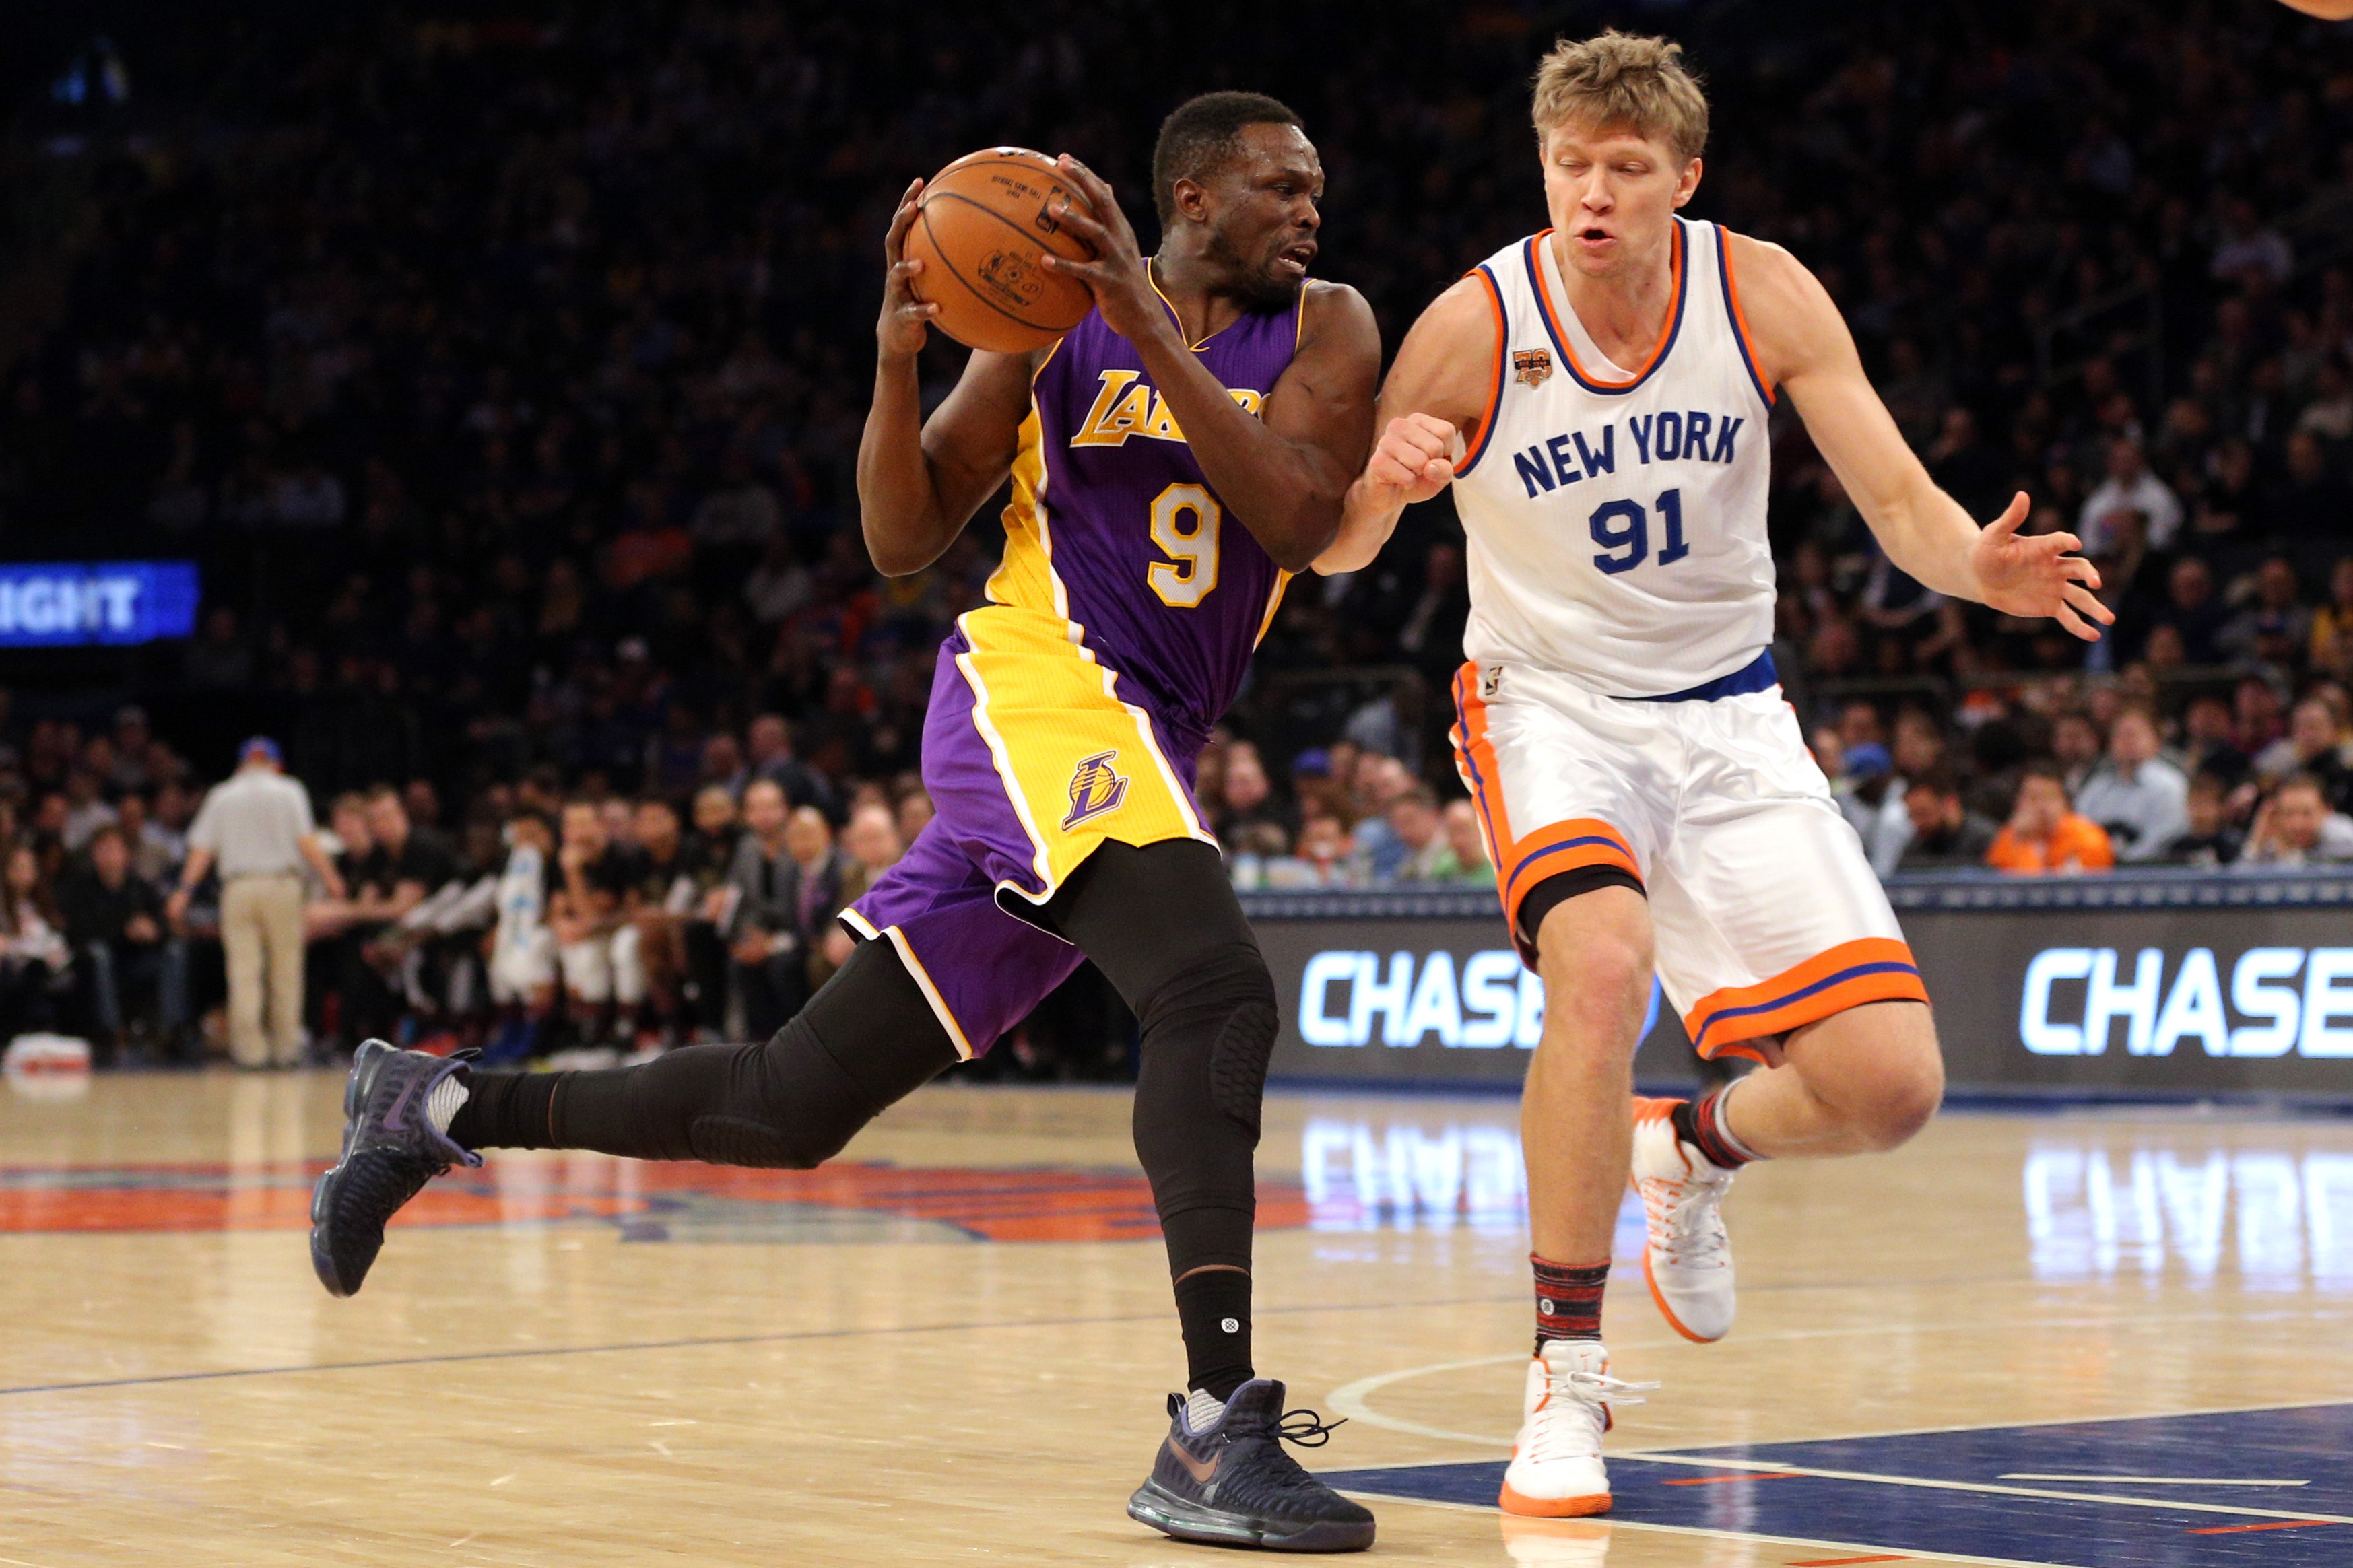 Feb 6, 2017; New York, NY, USA; Los Angeles Lakers small forward Luol Deng (9) drives against New York Knicks small forward Mindaugas Kuzminskas (91) during the second quarter at Madison Square Garden. Mandatory Credit: Brad Penner-USA TODAY Sports